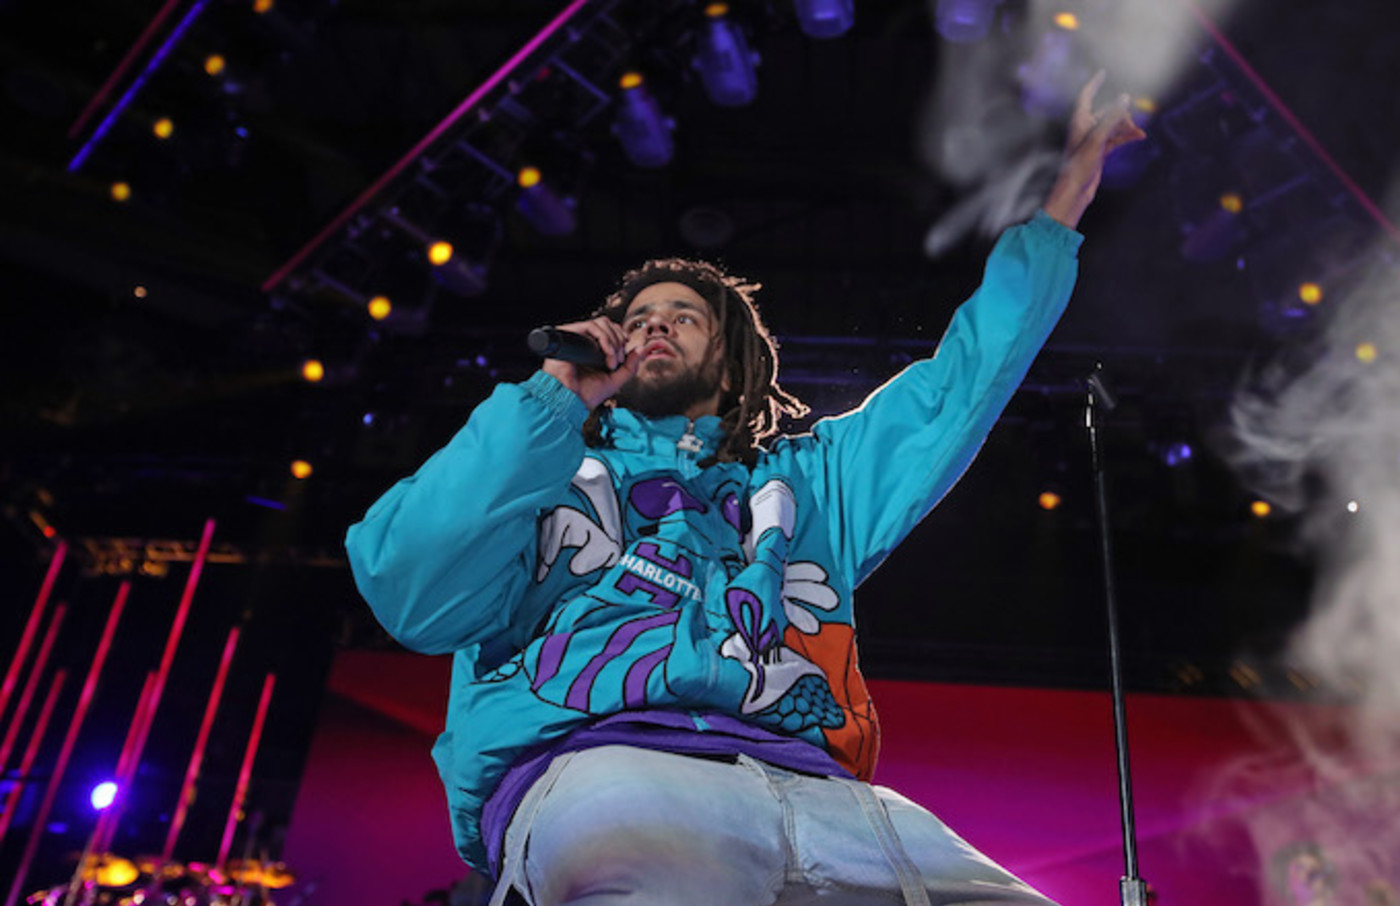 J. Cole performs during the 2019 NBA All-Star Game.